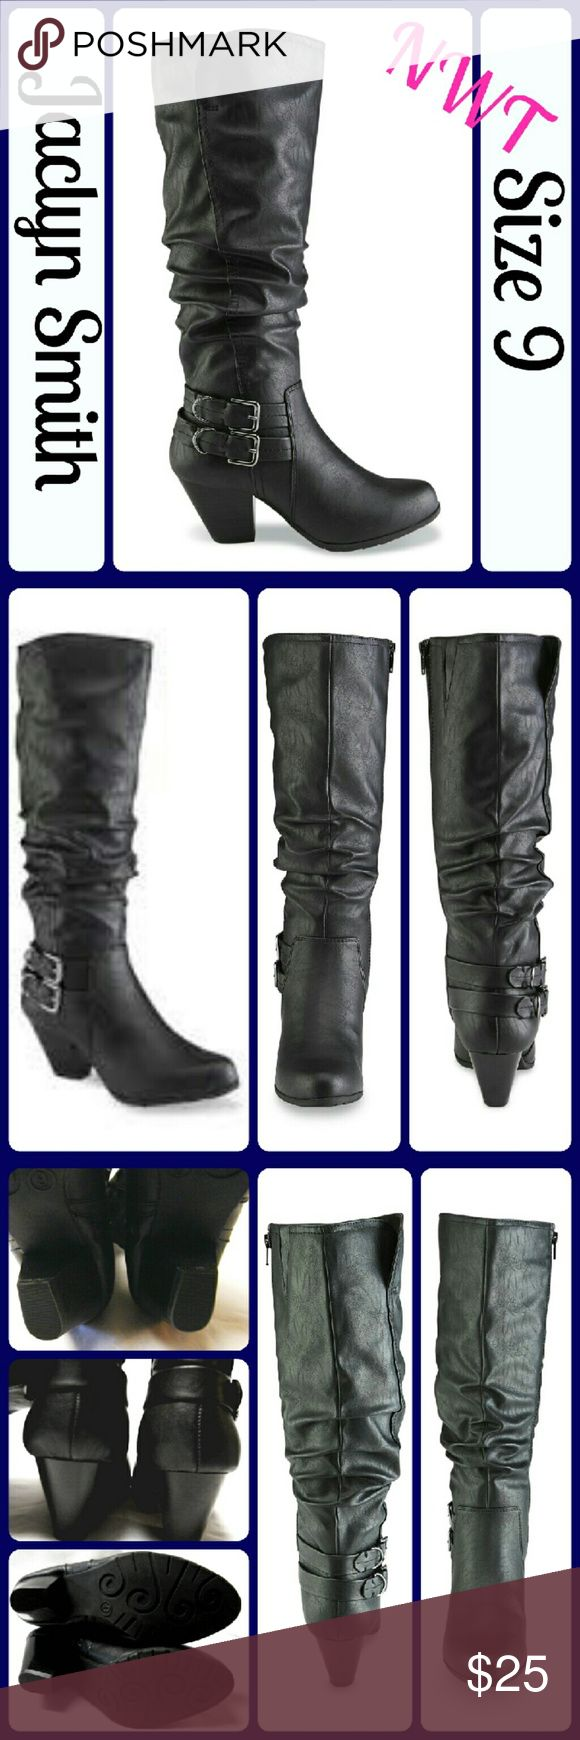 NIB Sz 9 Slouch Boot from Jaclyn Smith NIB ..Take your casual look to a trendy level in this women's Exton slouch boot from Jaclyn Smith. Made with a black synthetic leather upper, this Cuban heel boot zips on easily, while silvertone buckle strap detailing and a scrunched shaft give you standout style you crave.   ~Knee height  ~Side zip closure  ~Shaft height: 14 in.  ~Shaft circumference: 16 in.  ~2-3/4 in. Cuban heel. ~leather upper  ~Round toe  ~Fabric lining  ~Almond toe  ~Cushioned…